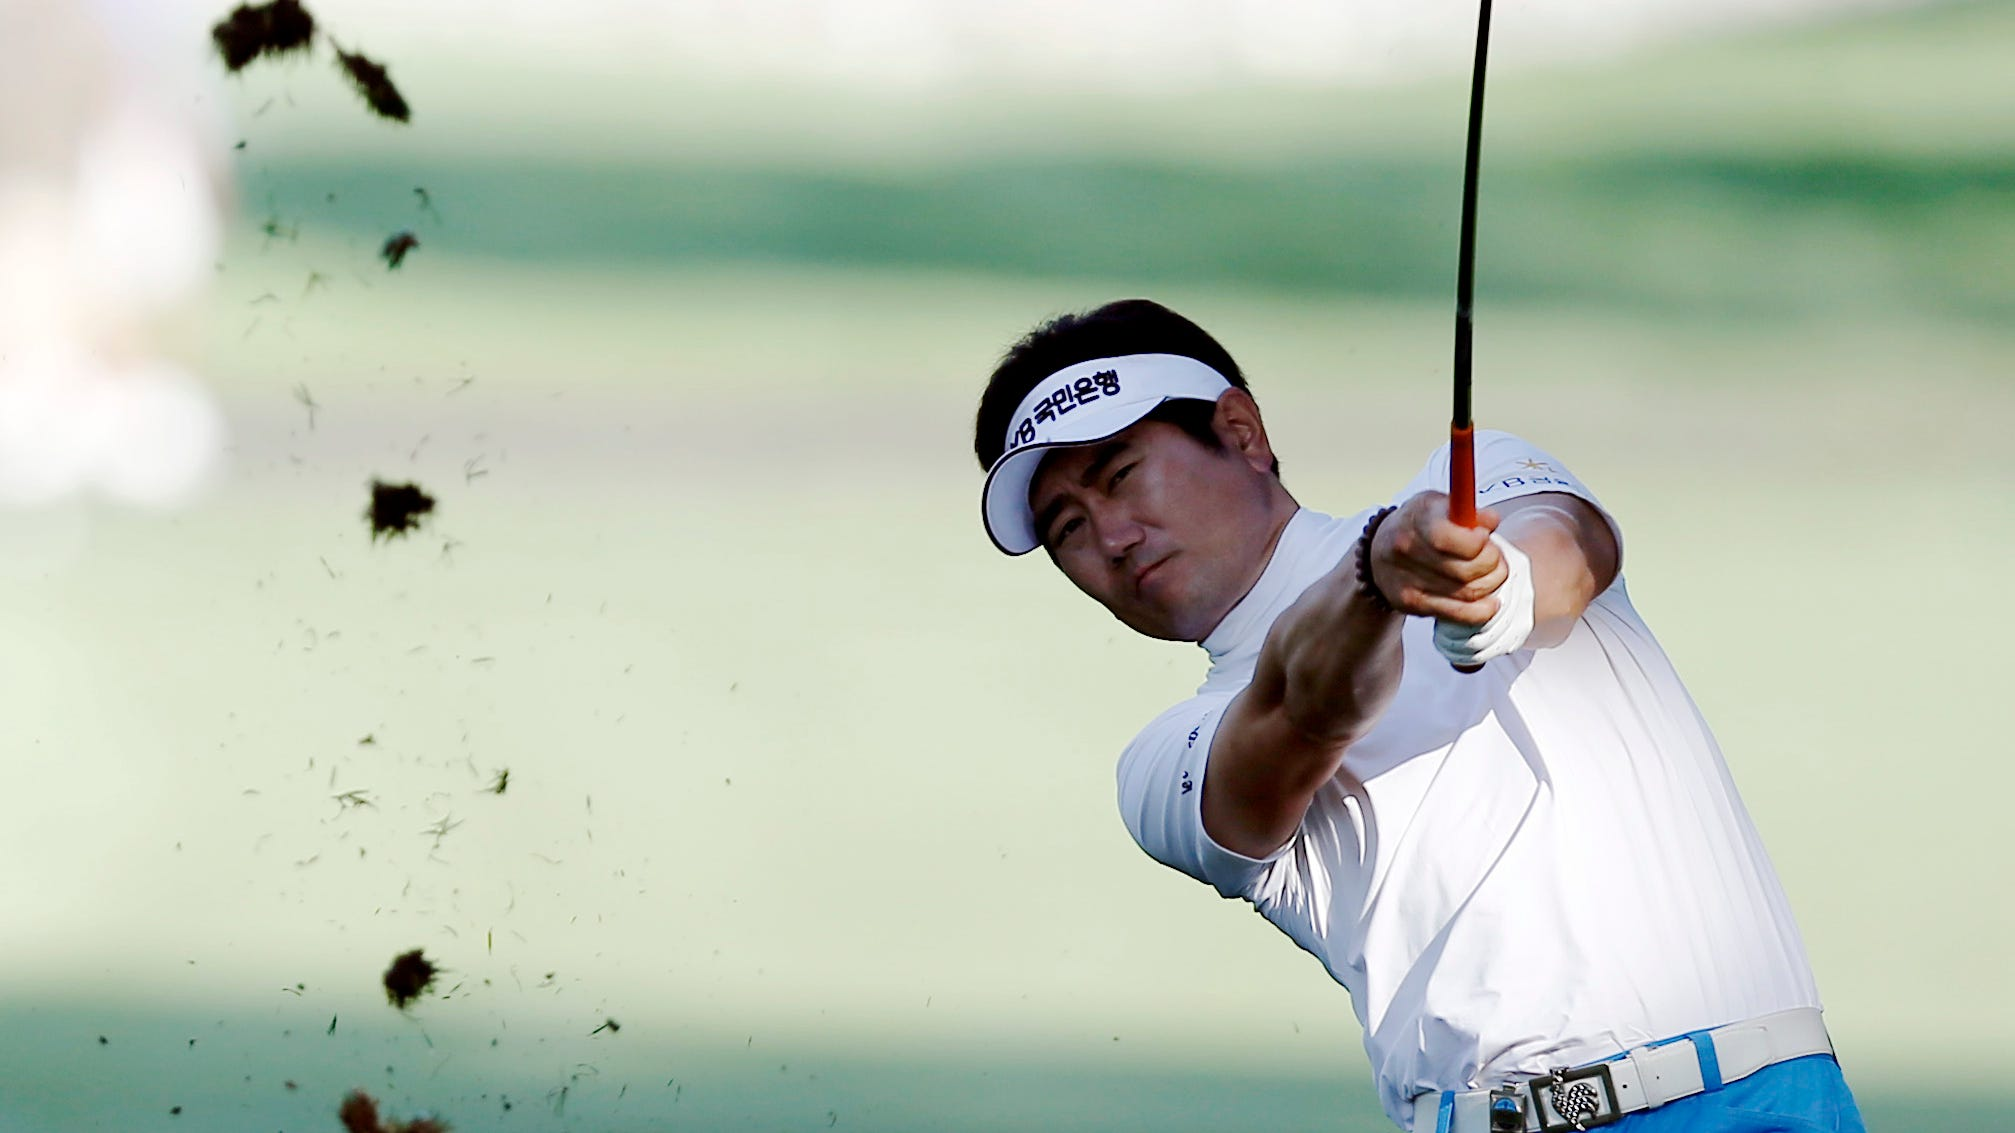 Y.E. Yang plays from the 12th fairway during the first round of the 95th PGA Championship at Oak Hill Country Club.